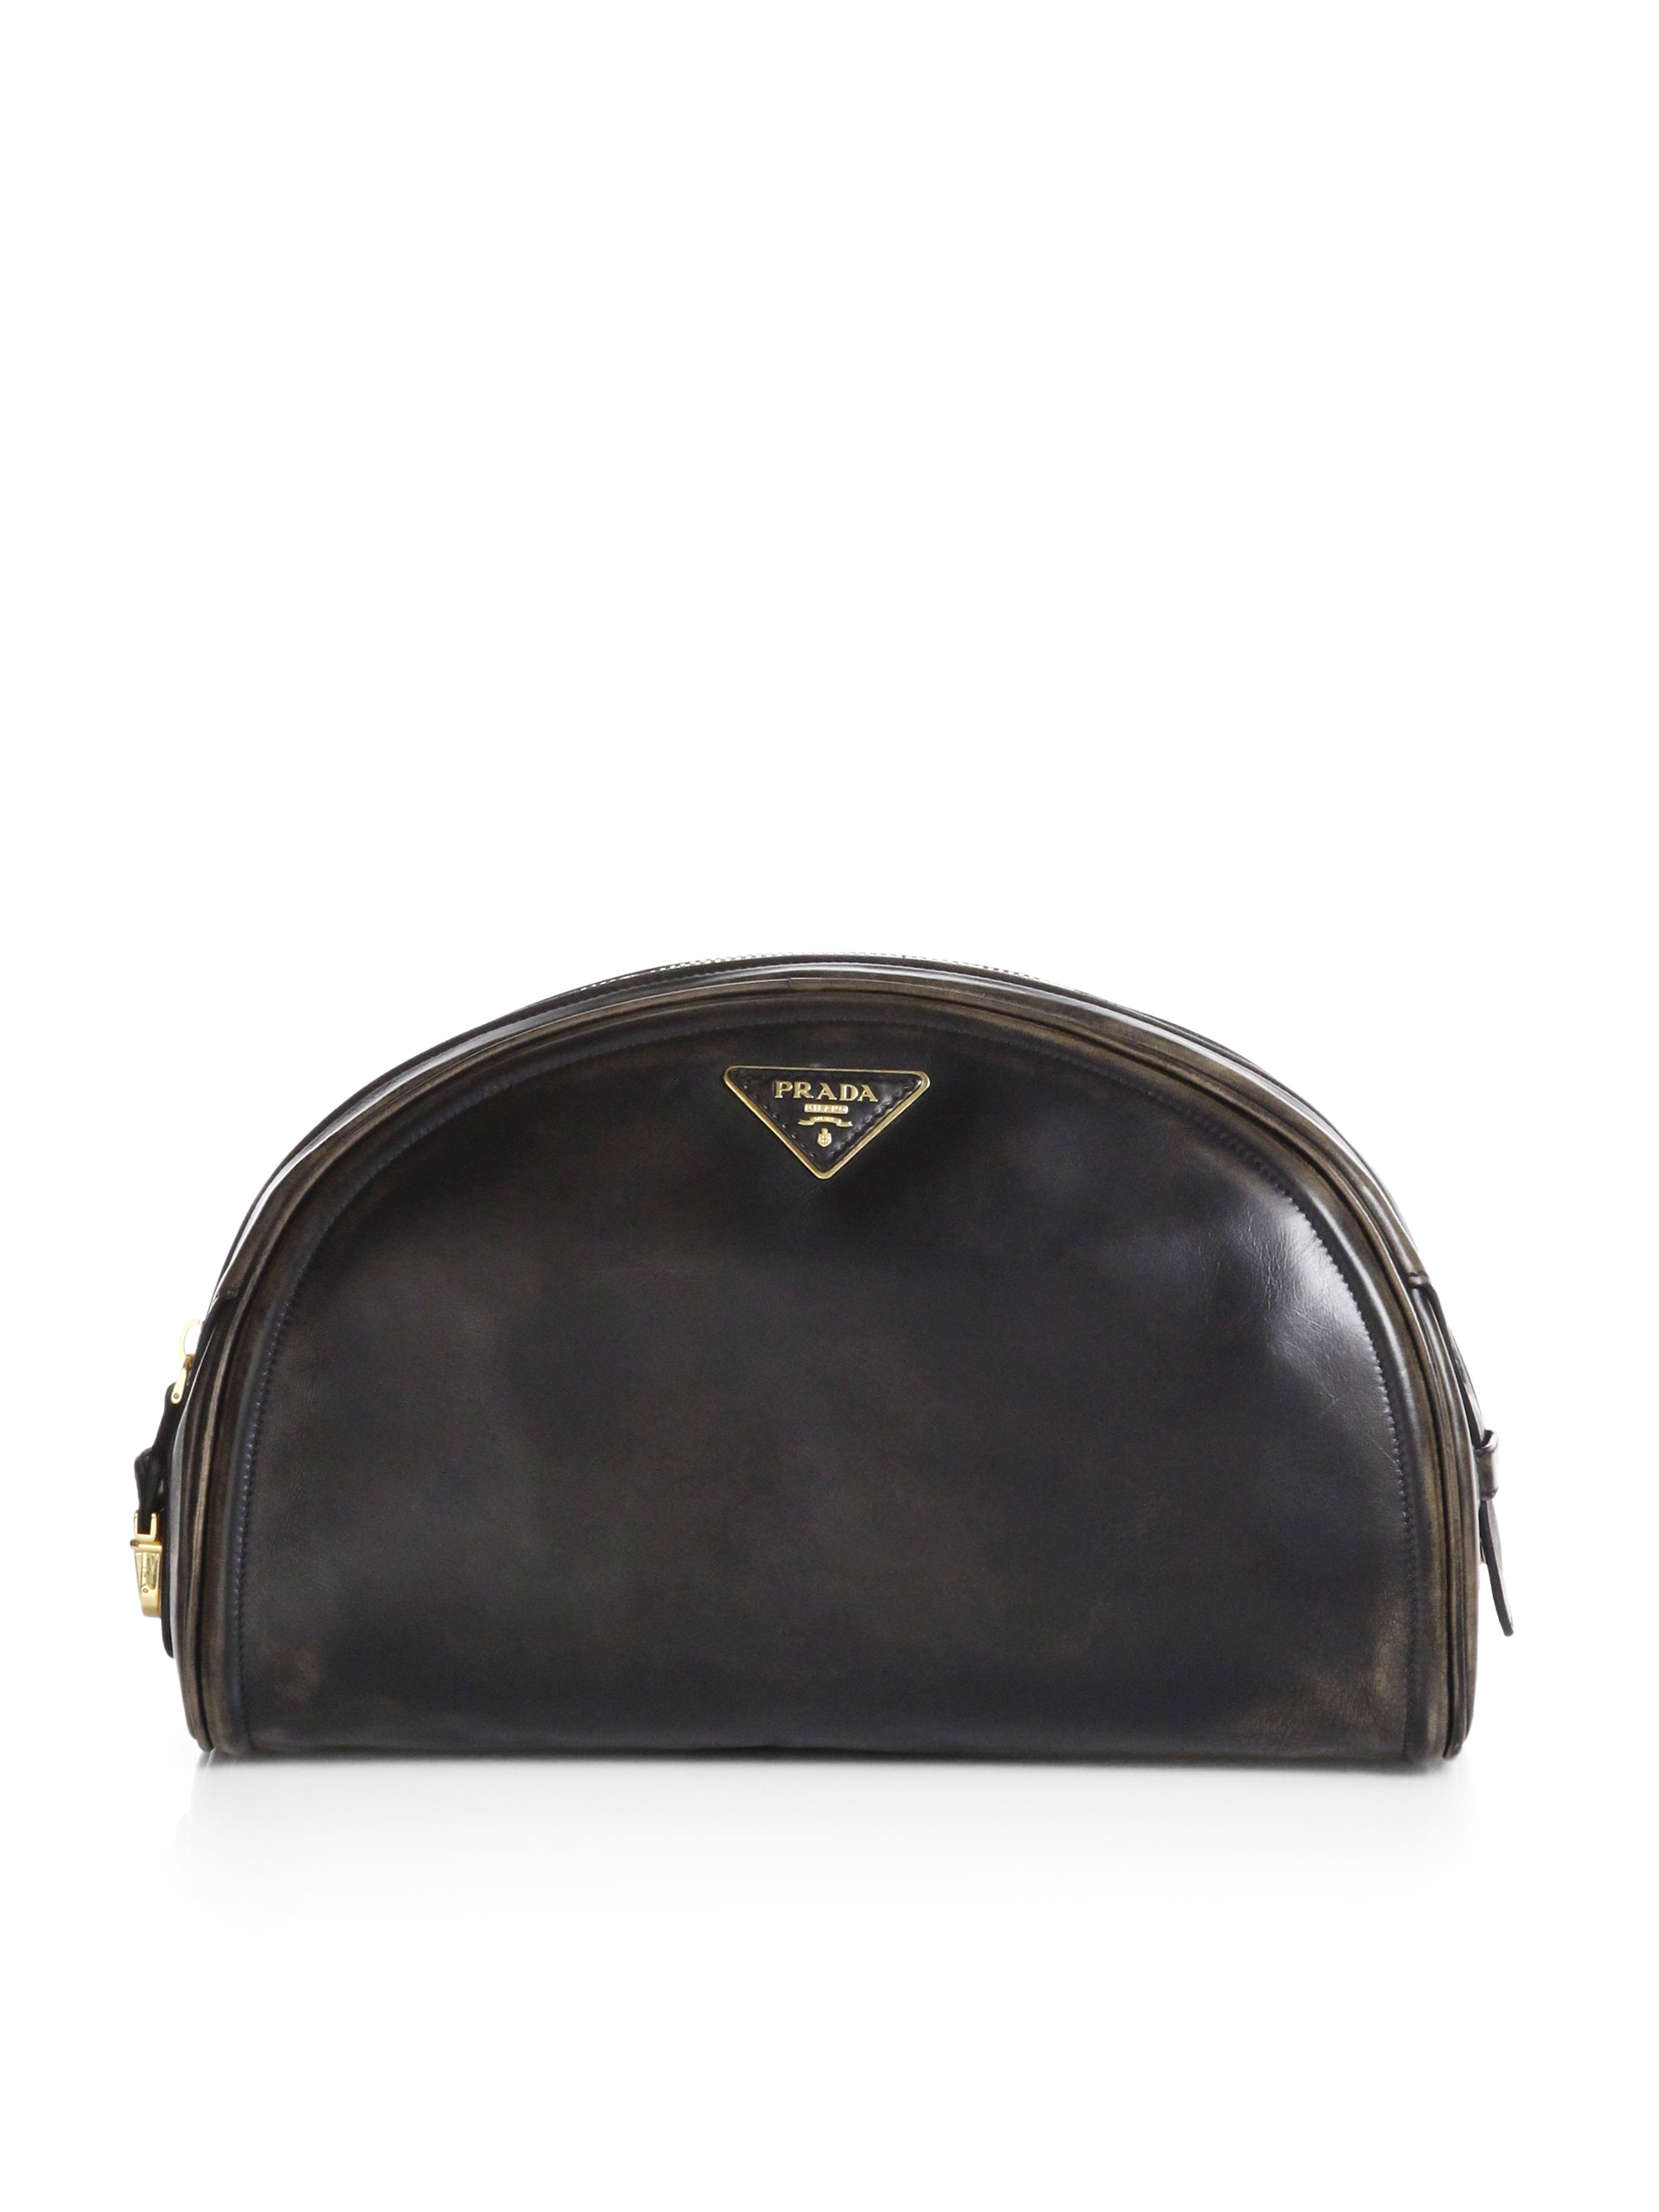 Prada Vitello Vintage Bowler Clutch in Black (NERO-BLACK) | Lyst